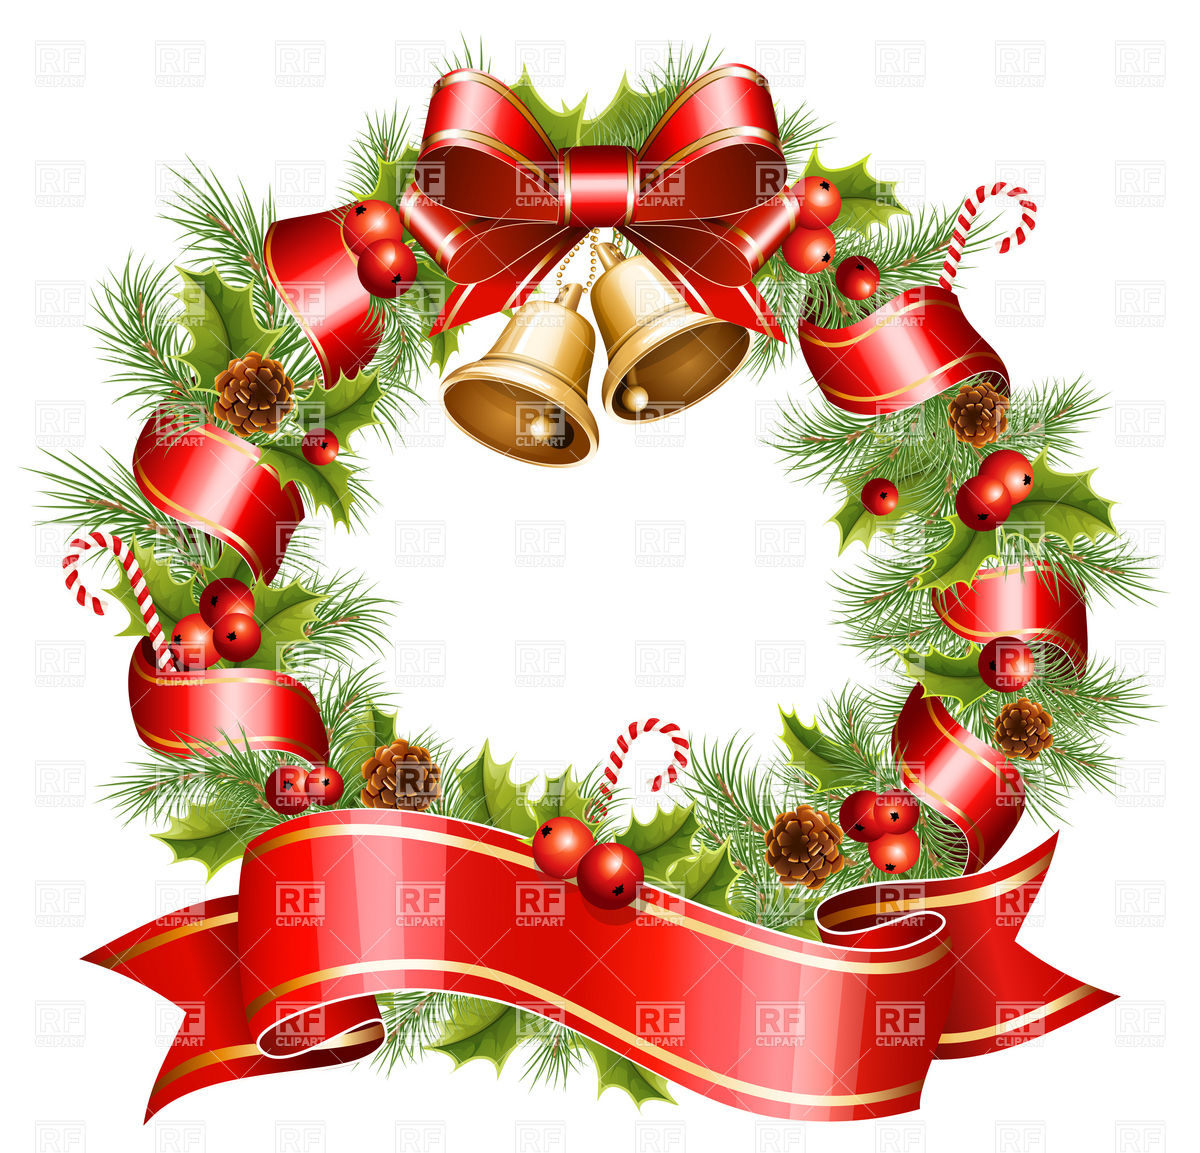 Christmas Wreath Holiday Download Royalty Free Vector Clip Art Image